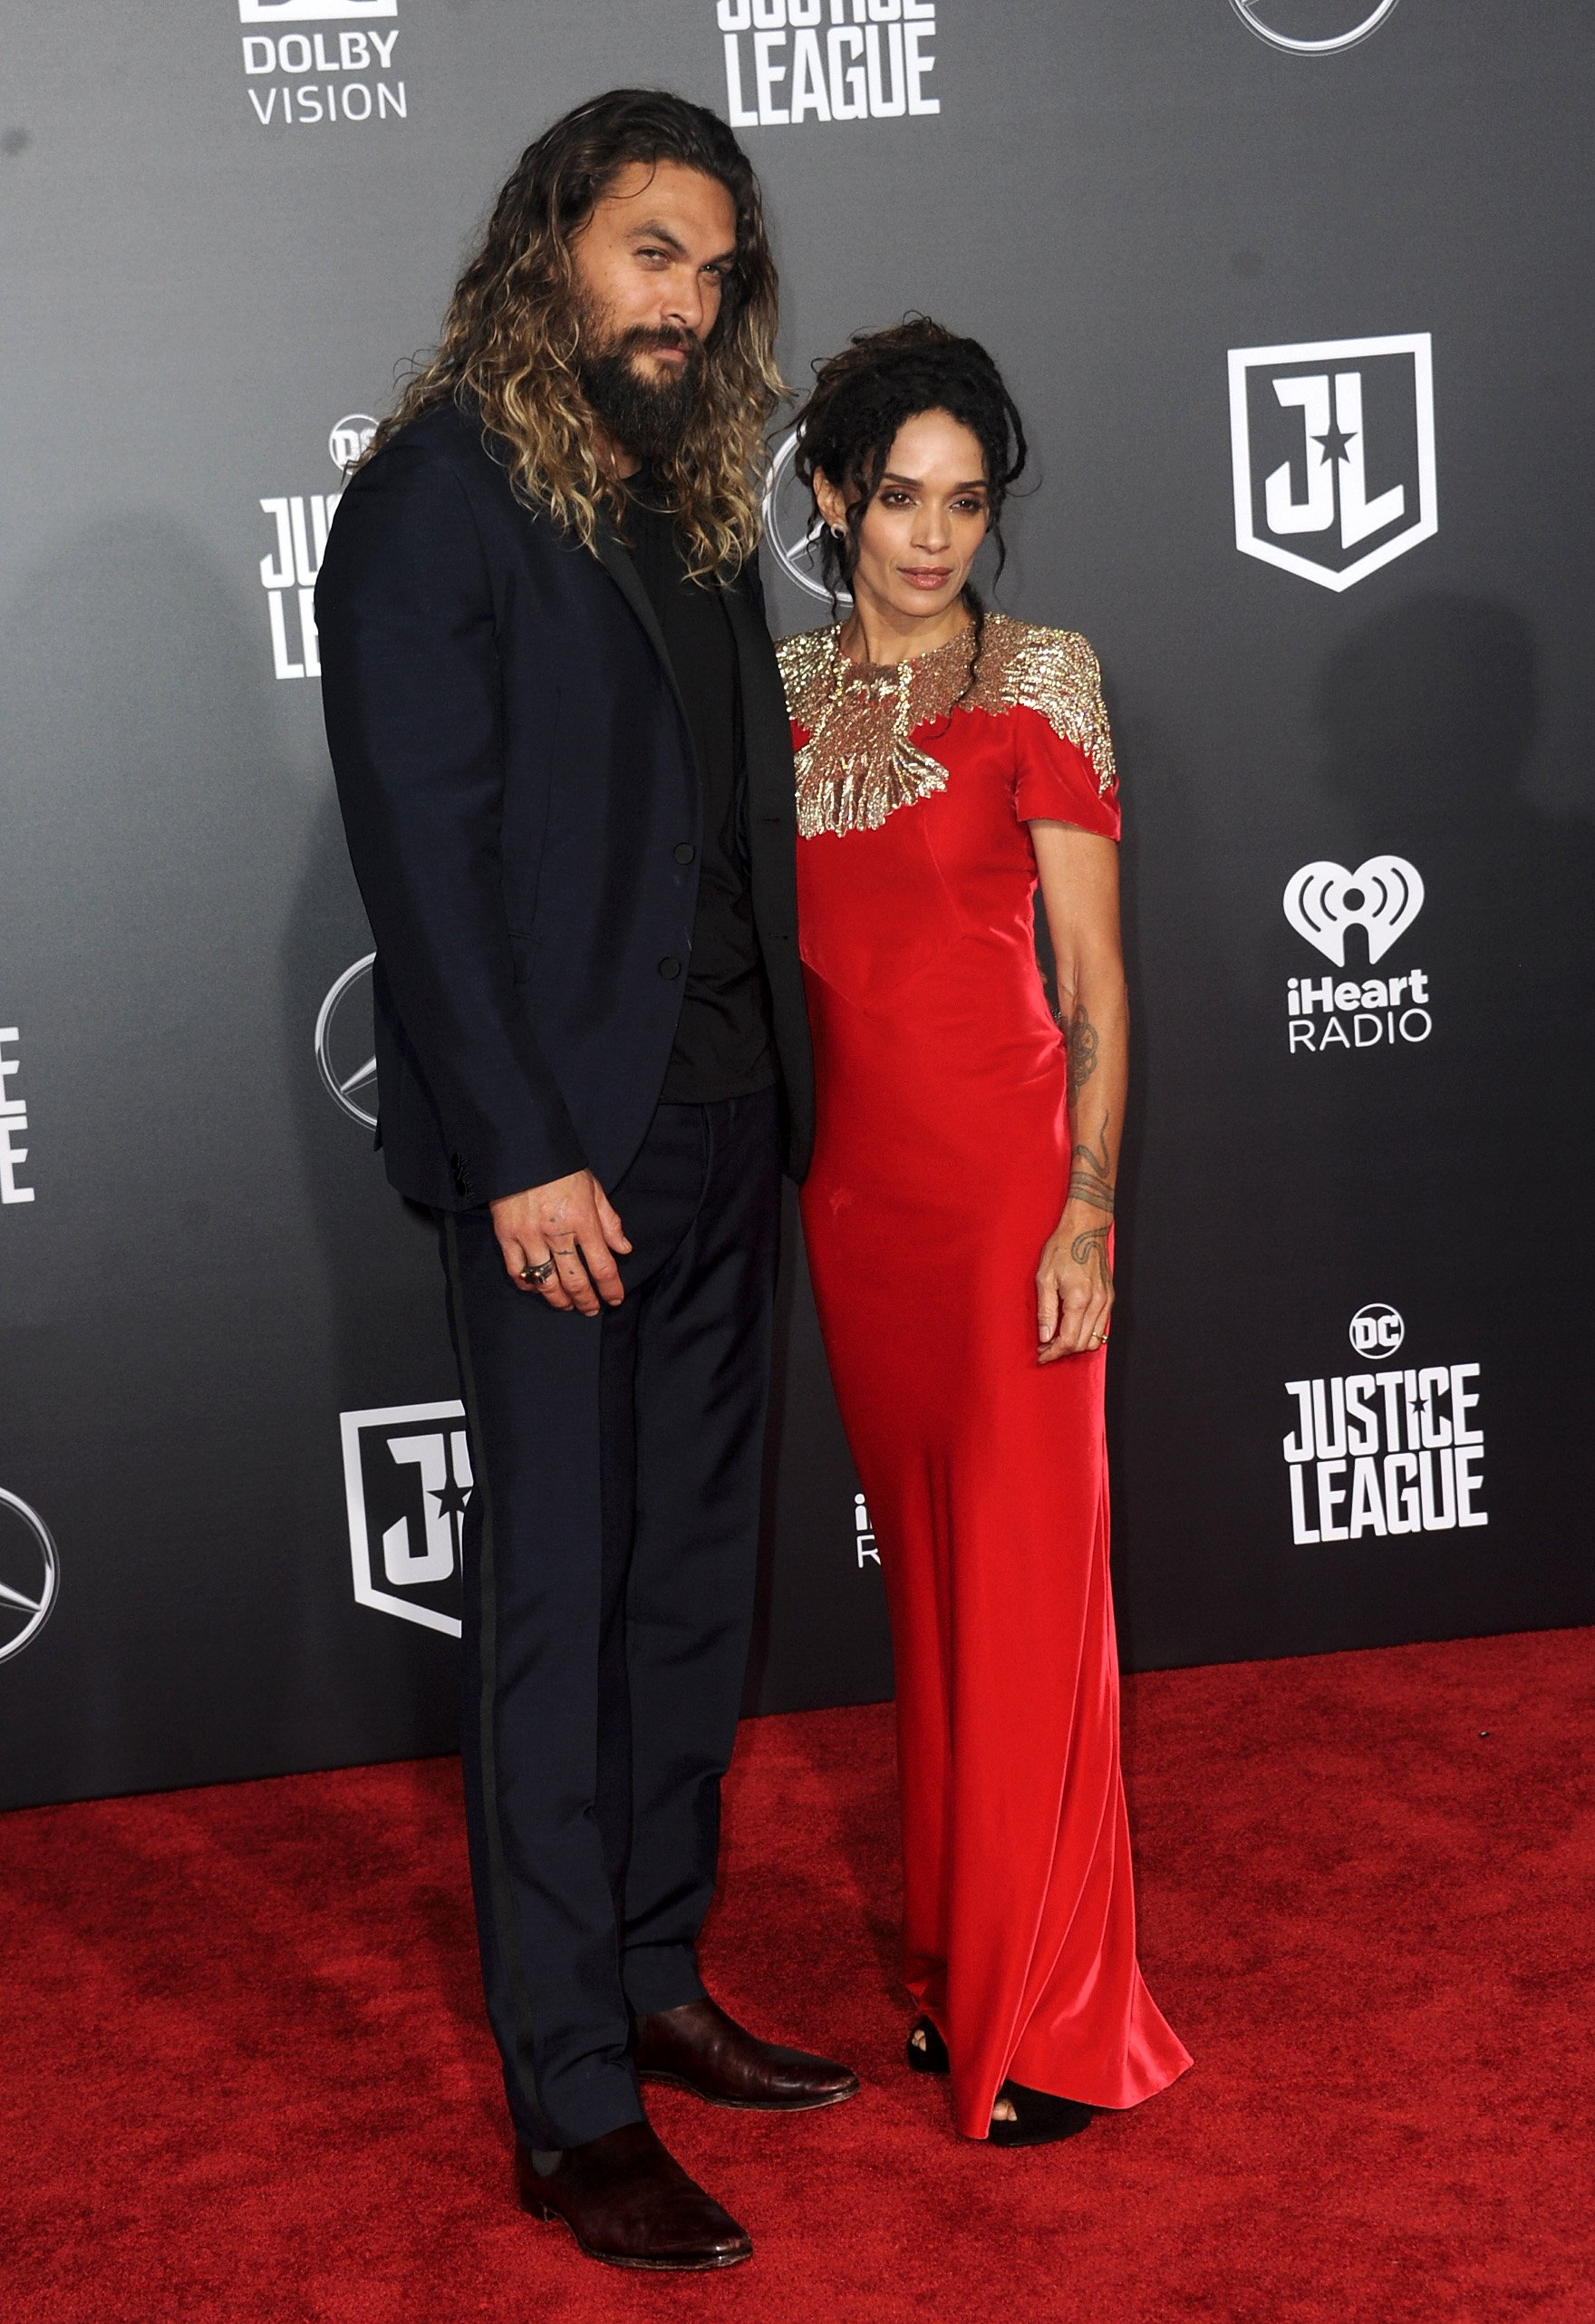 """Jason Momoa and Lisa Bonet attend the premiere of """"Justice League"""" in Hollywood, California on November 13, 2017 